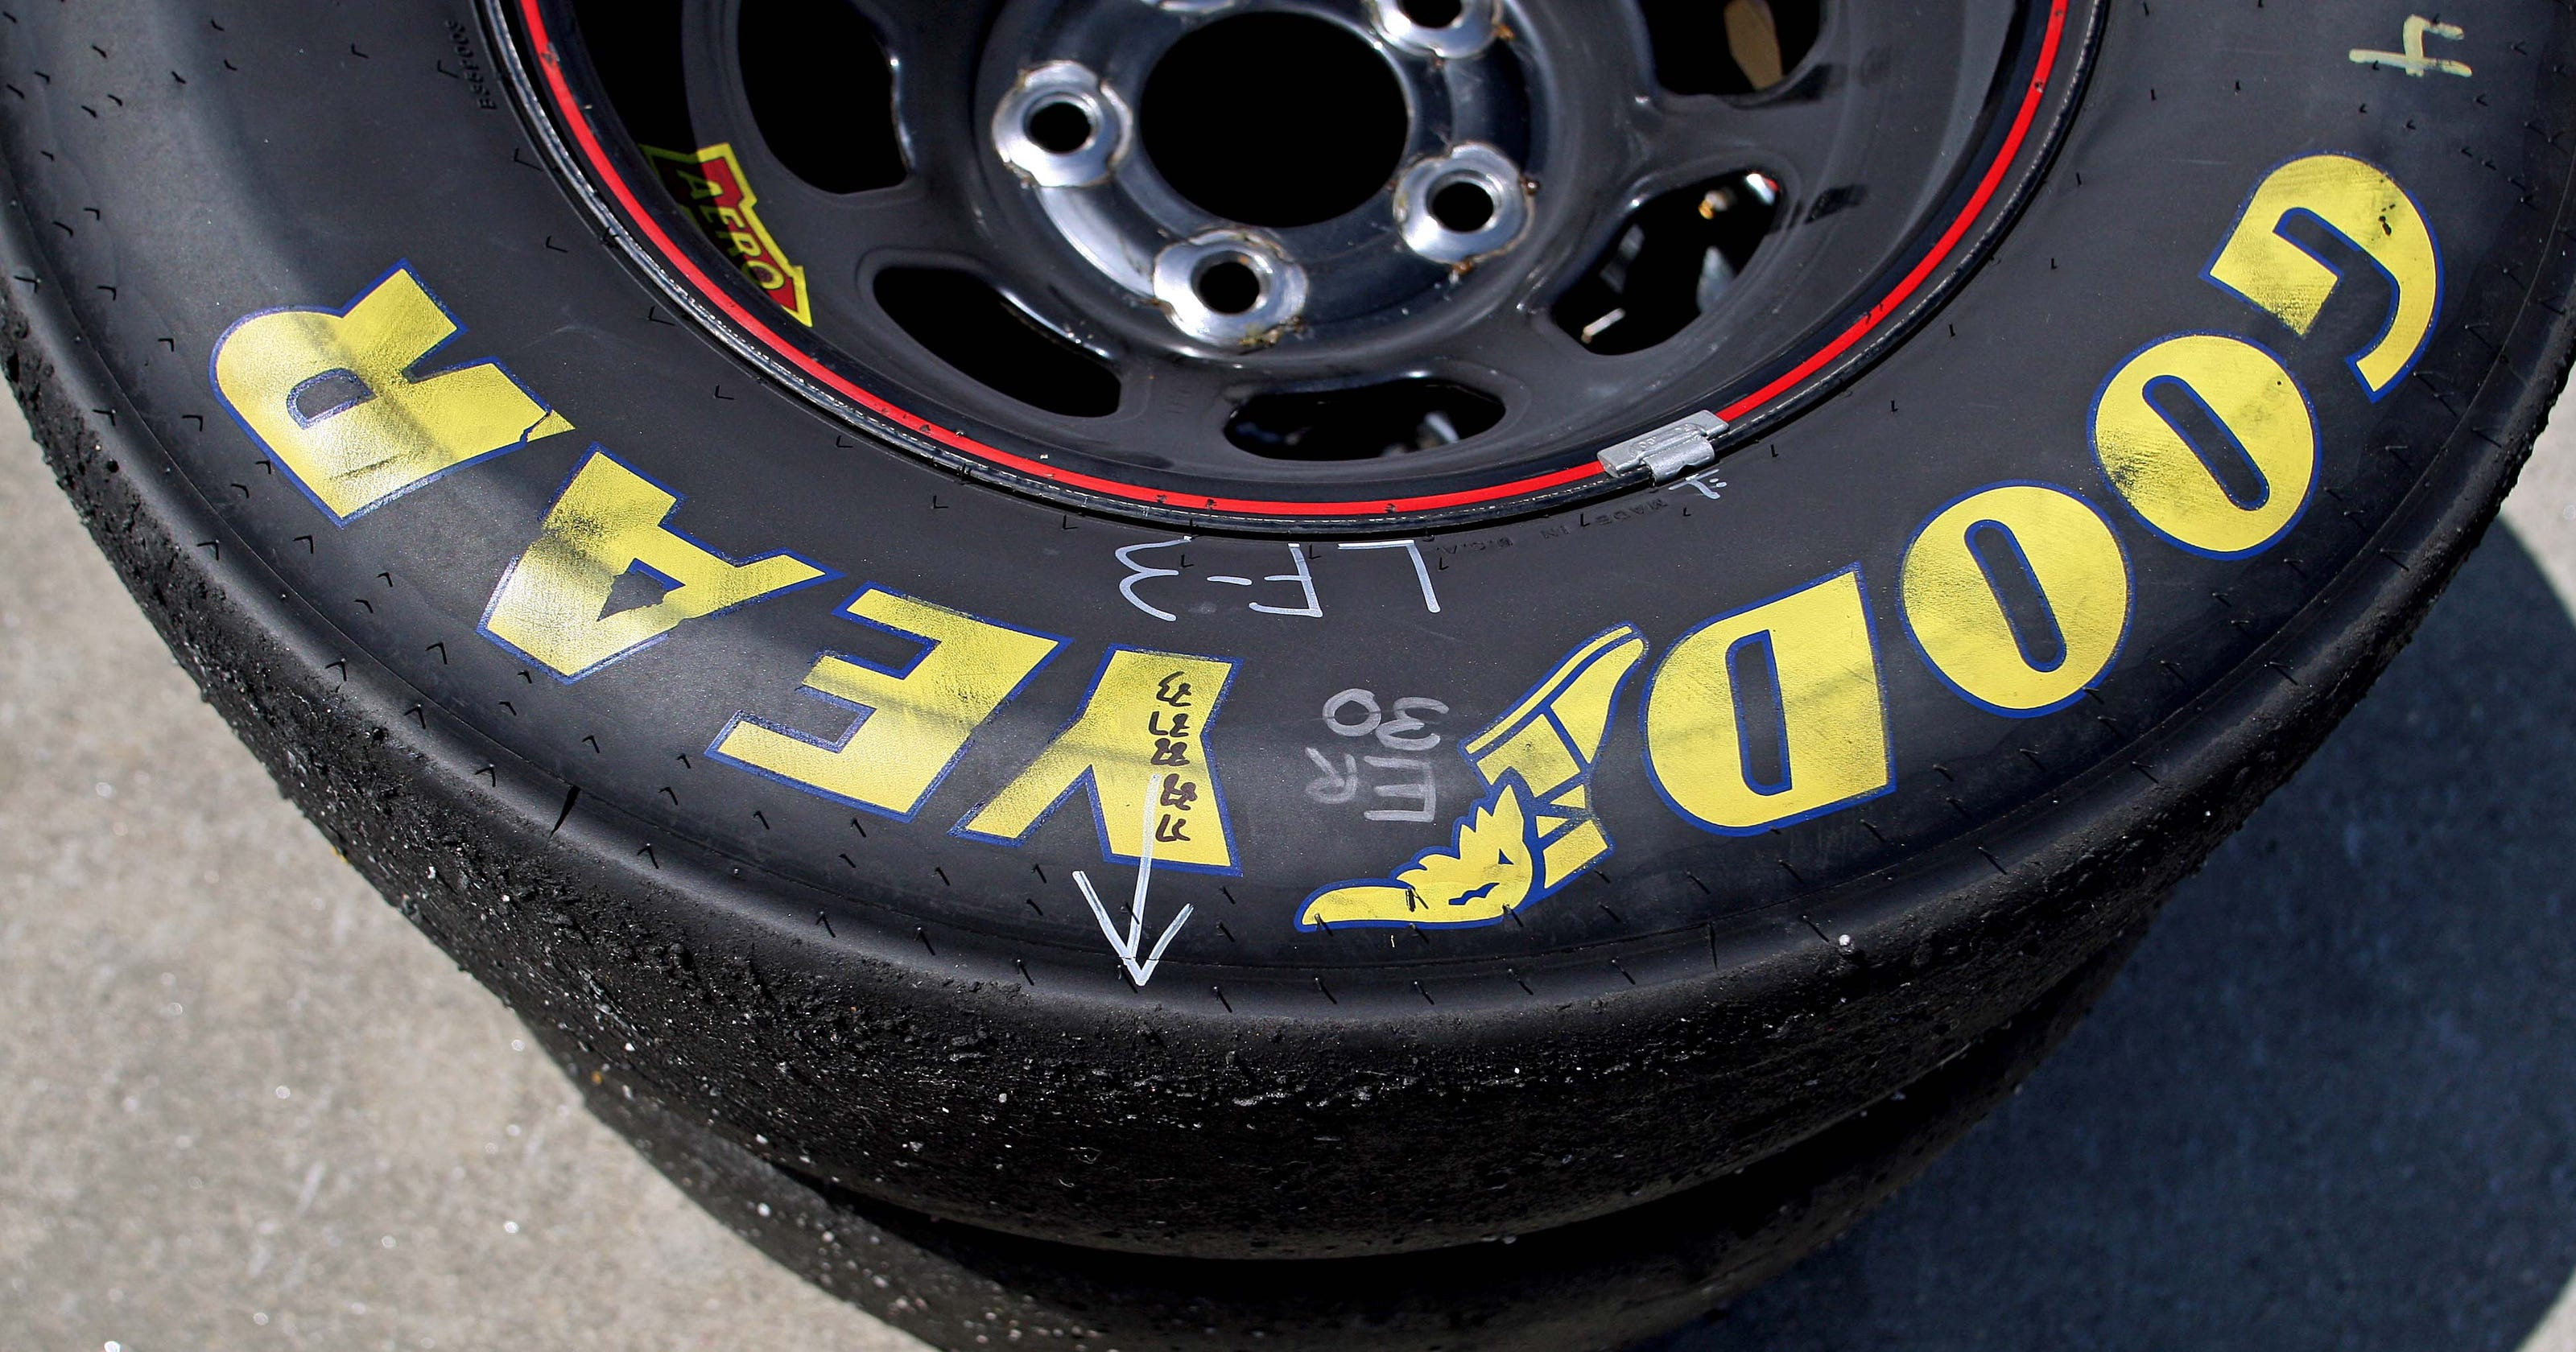 Grip and grin: Gordon, Logano hope tires at RIR boost action